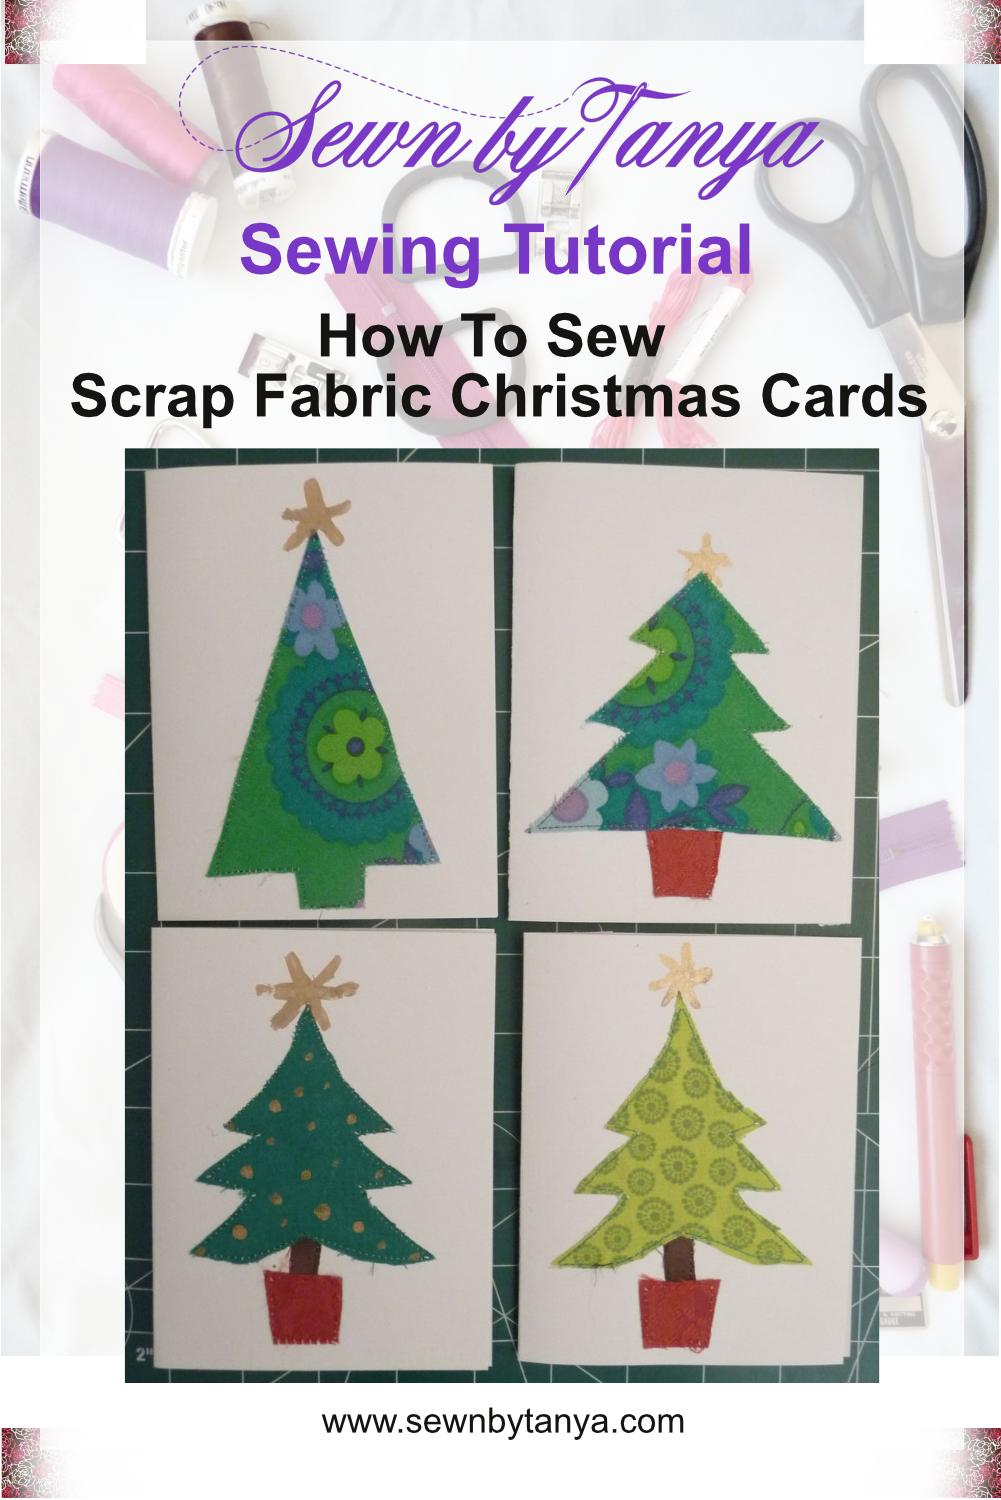 """""""Sewn By Tanya Sewing Tutorial: Scrap Fabric Christmas Cards"""" showing 4 Christmas tree themes Christmas cards"""